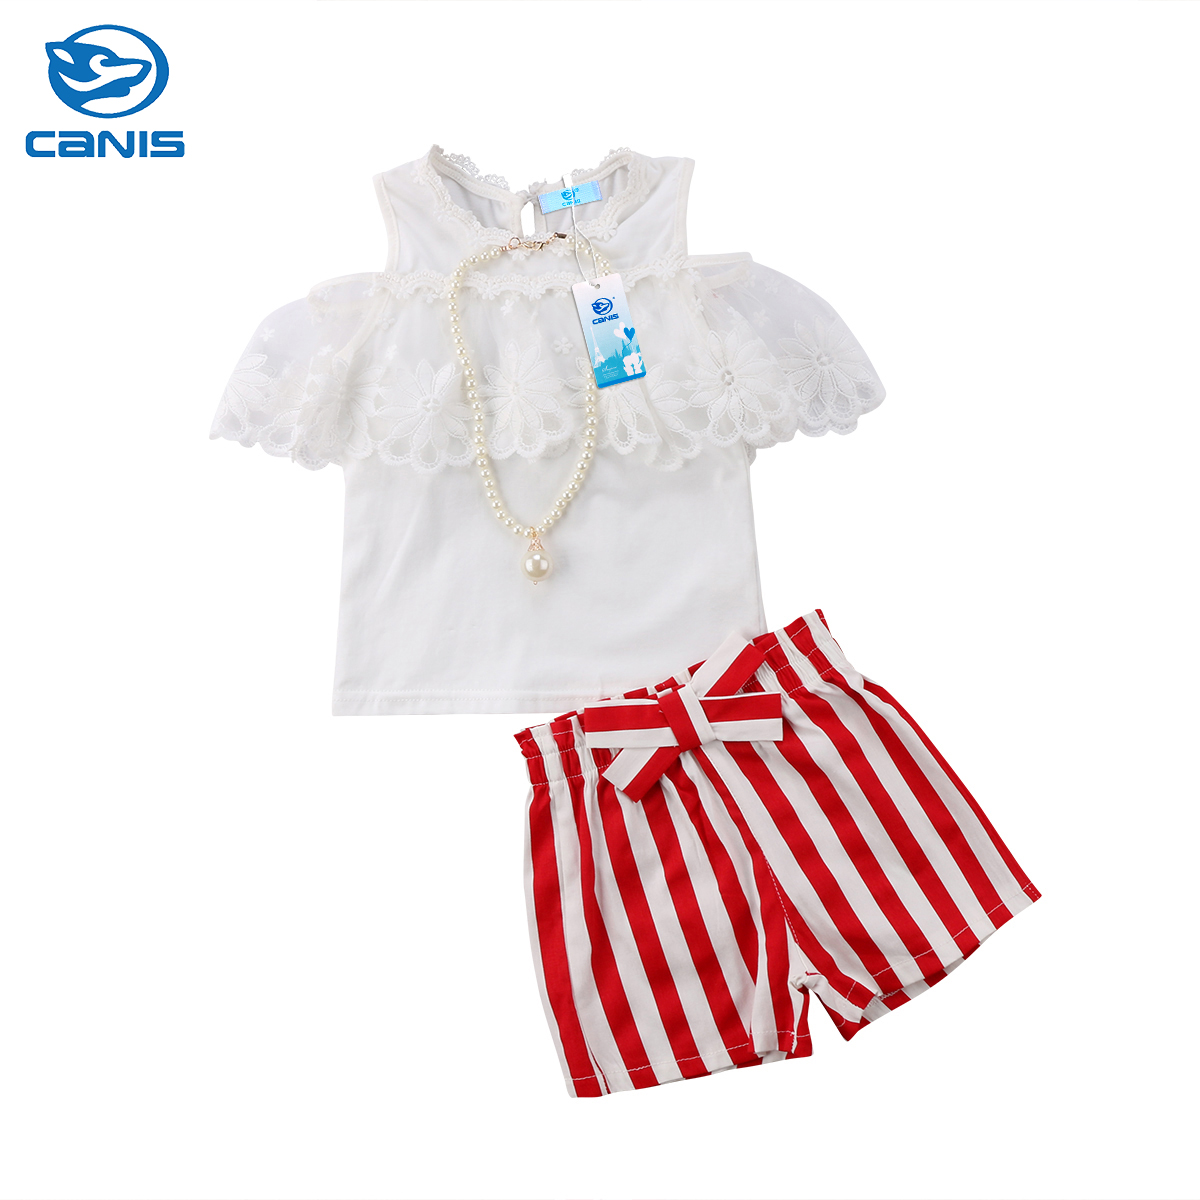 2018 Brand New Summer 2PCS Toddler Infant Kids Baby Girl Clothes Lace Off Shoulder Tops + Shorts Striped Pants Outfits Set 2-7T 2pcs baby set newborn toddler infant baby boy girl clothes summer sleeveless striped belt t shirt tops headband baby outfits